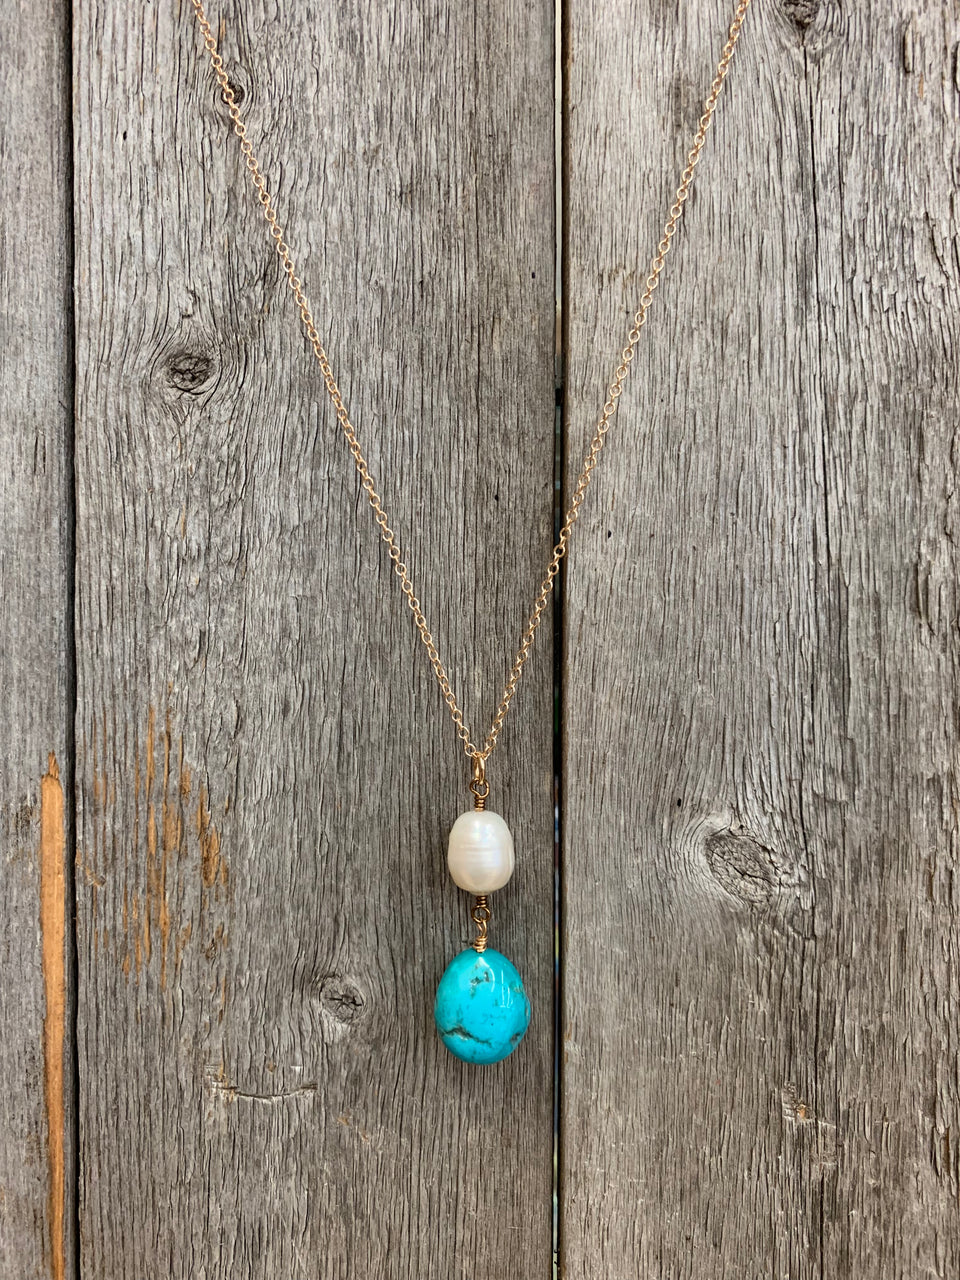 "J.Forks Designs necklace hanging on a wooden backdrop. This necklace is an 18"" bronze chain with freshwater pearl and Bisbee Turquoise Nugget drop and bronze lobster claw clasp."